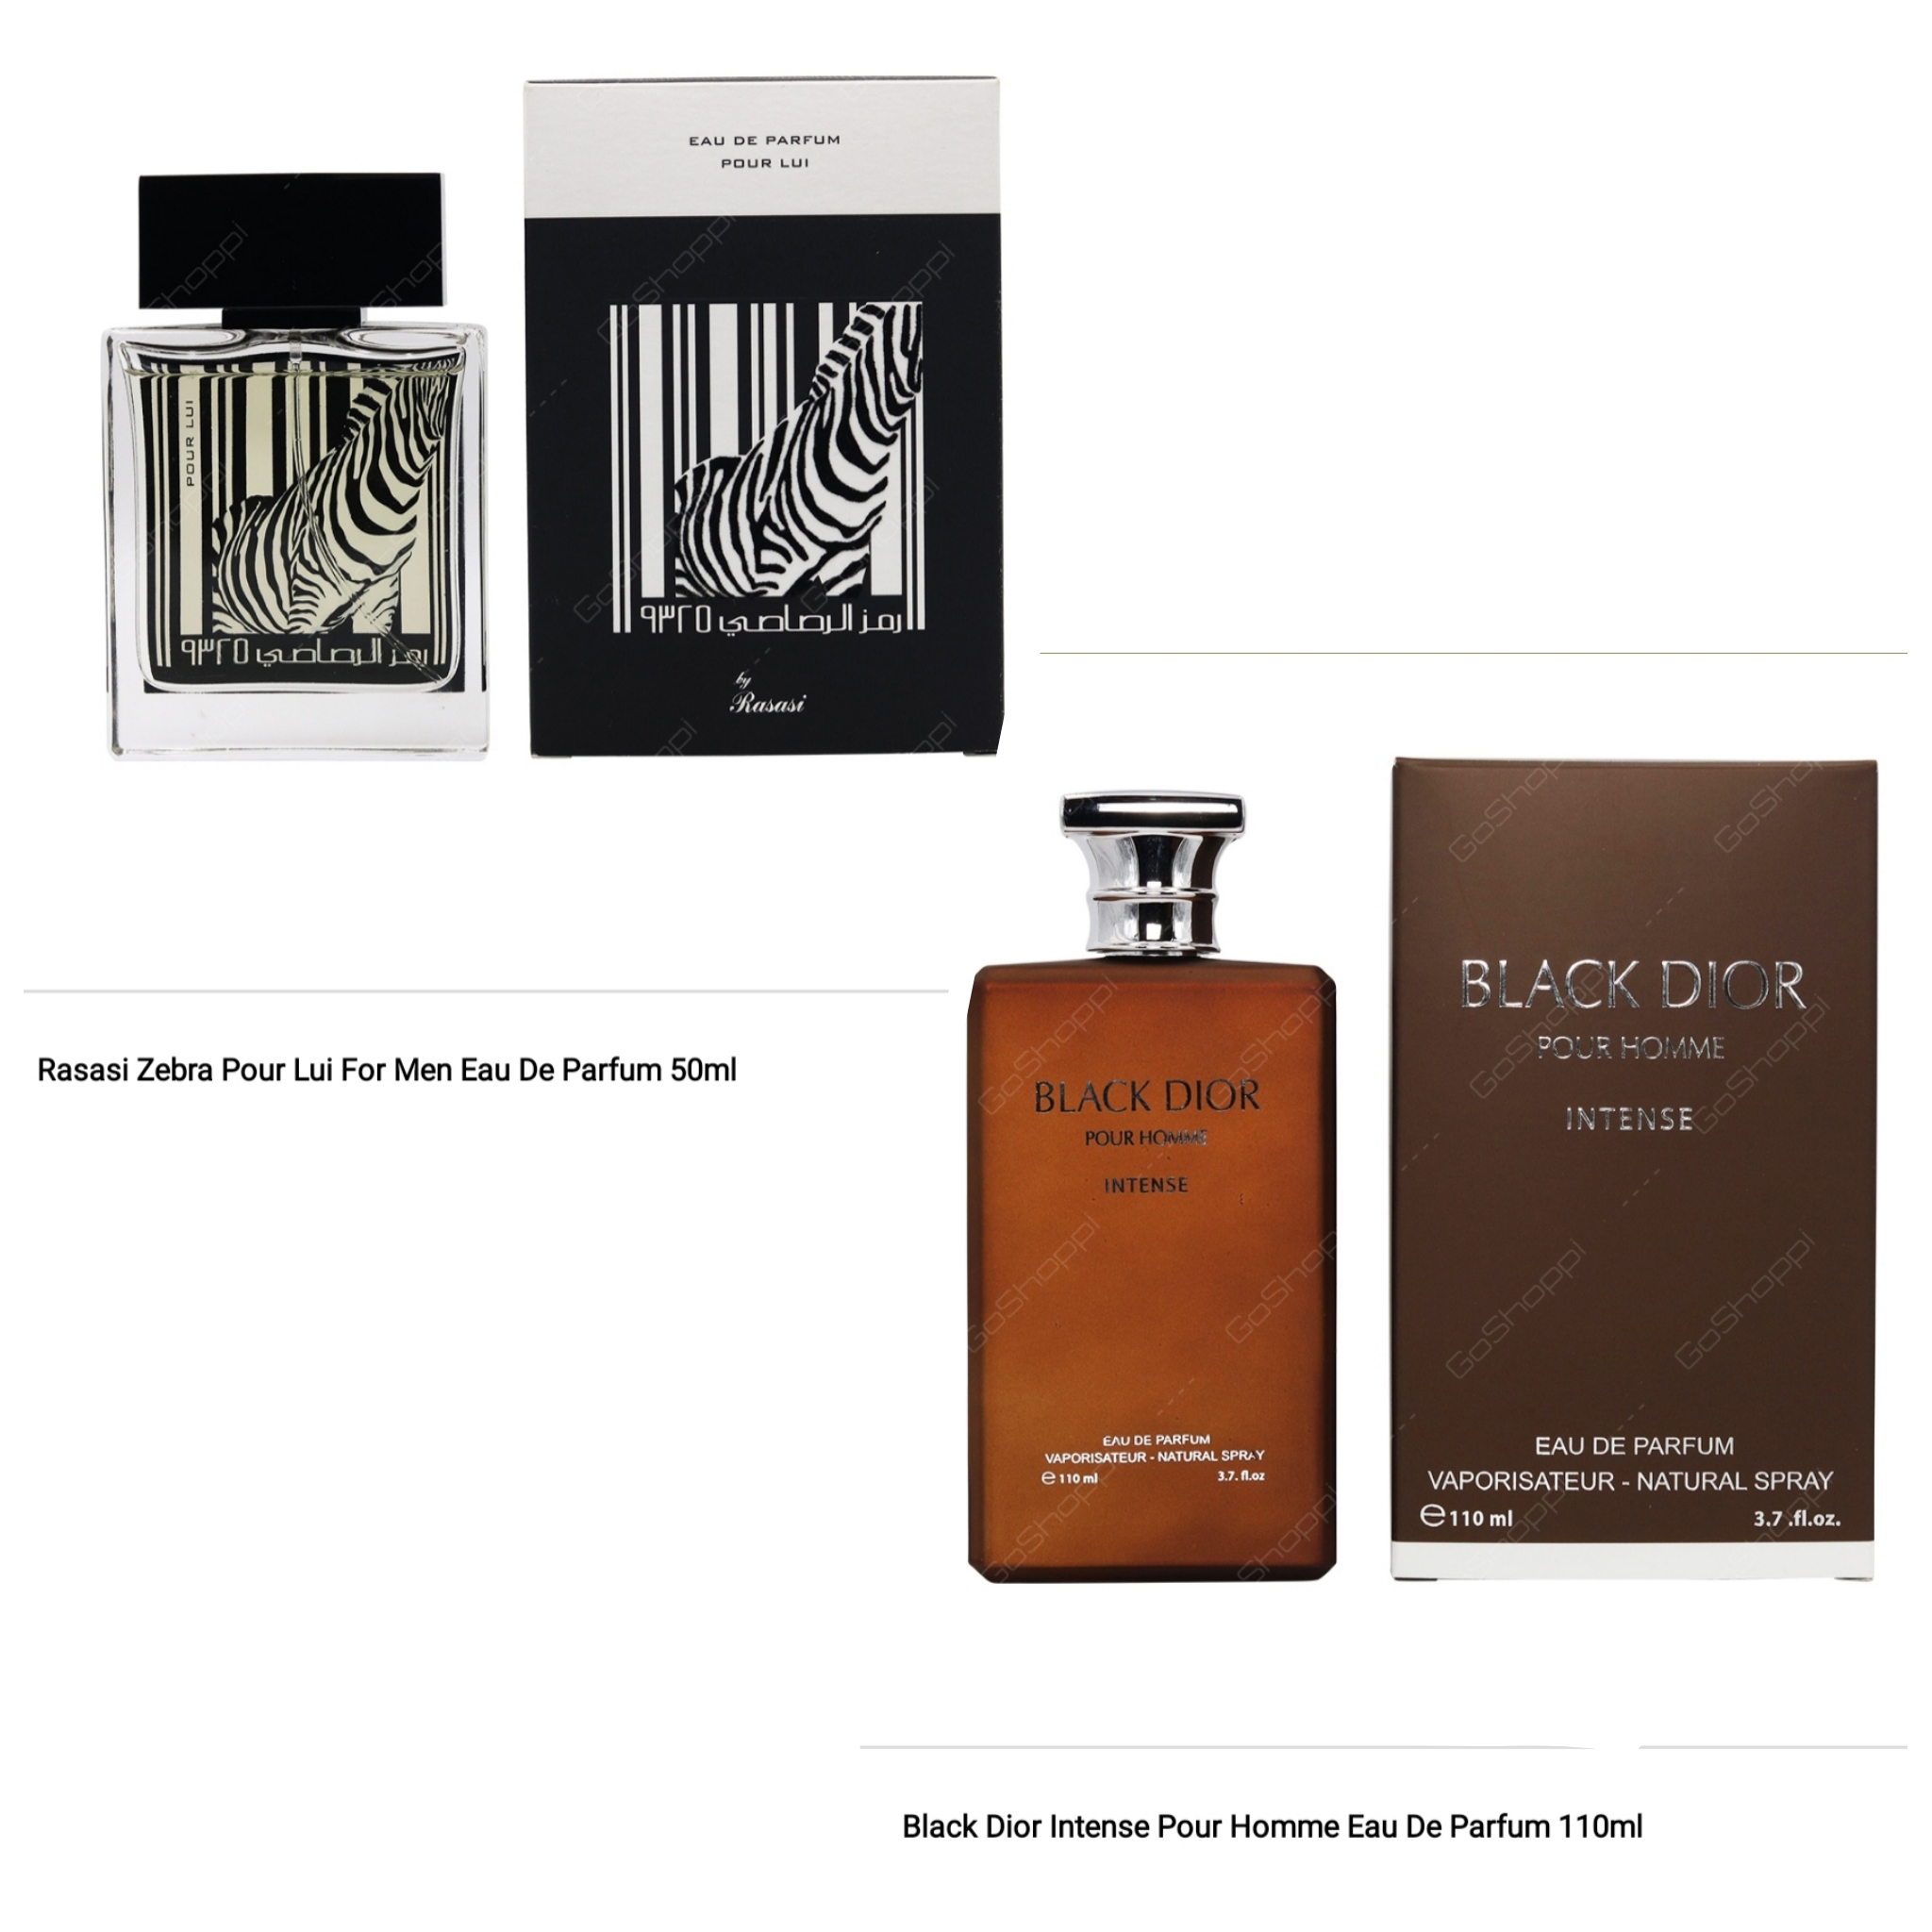 Rasasi Zebra and Black Dior Intense Combo Offer